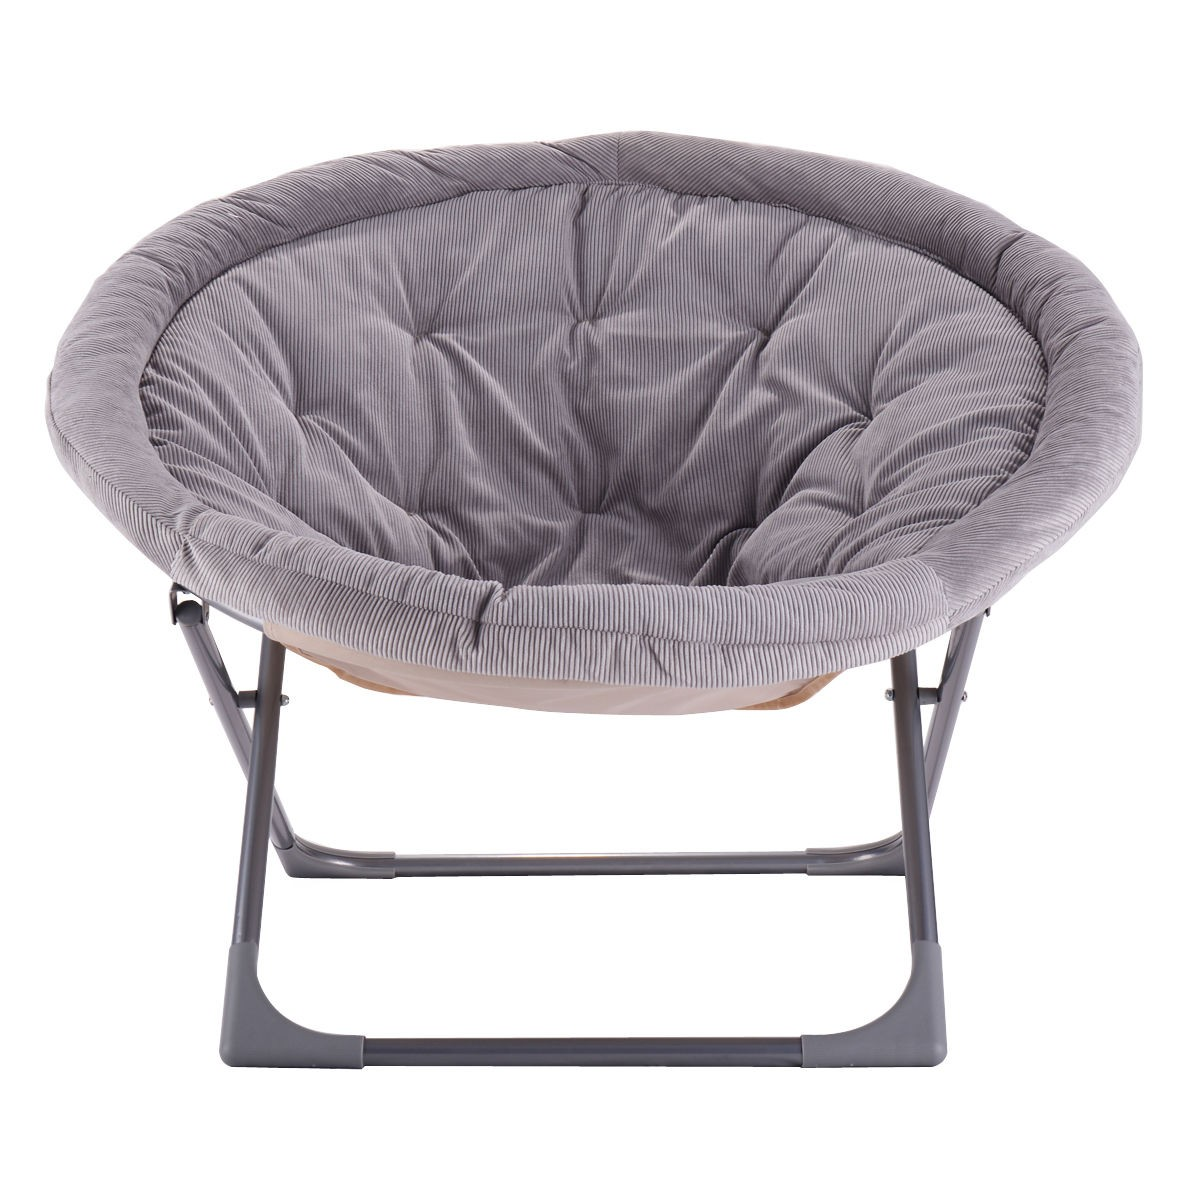 Grey Oversized Chair Oversized Large Folding Saucer Moon Chair Corduroy Round